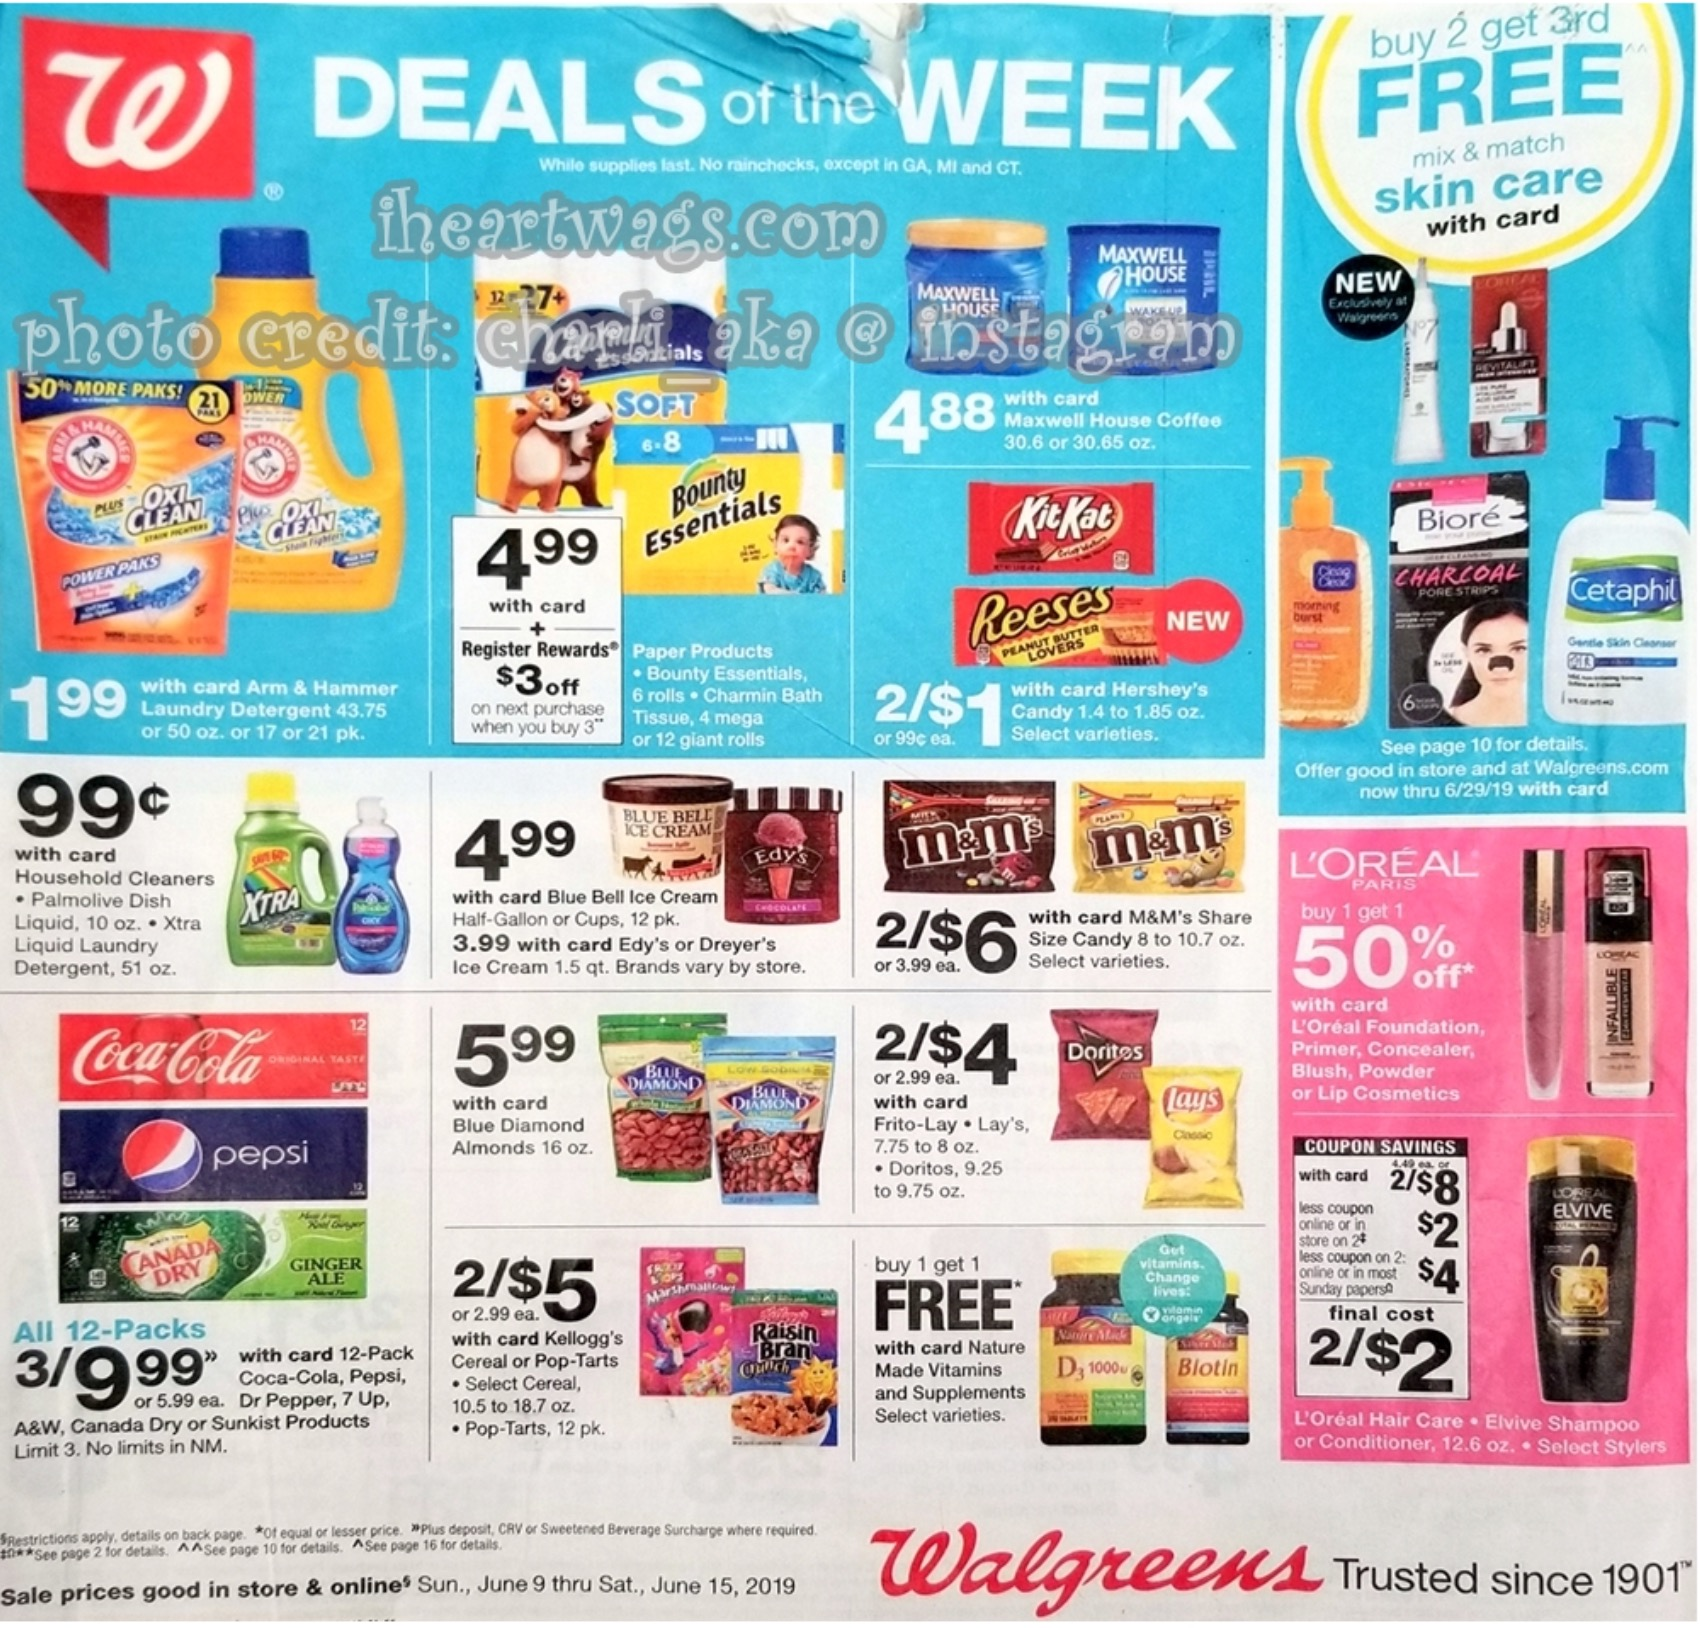 Walgreens Weekly Ad Preview Jun 9 - 15, 2019